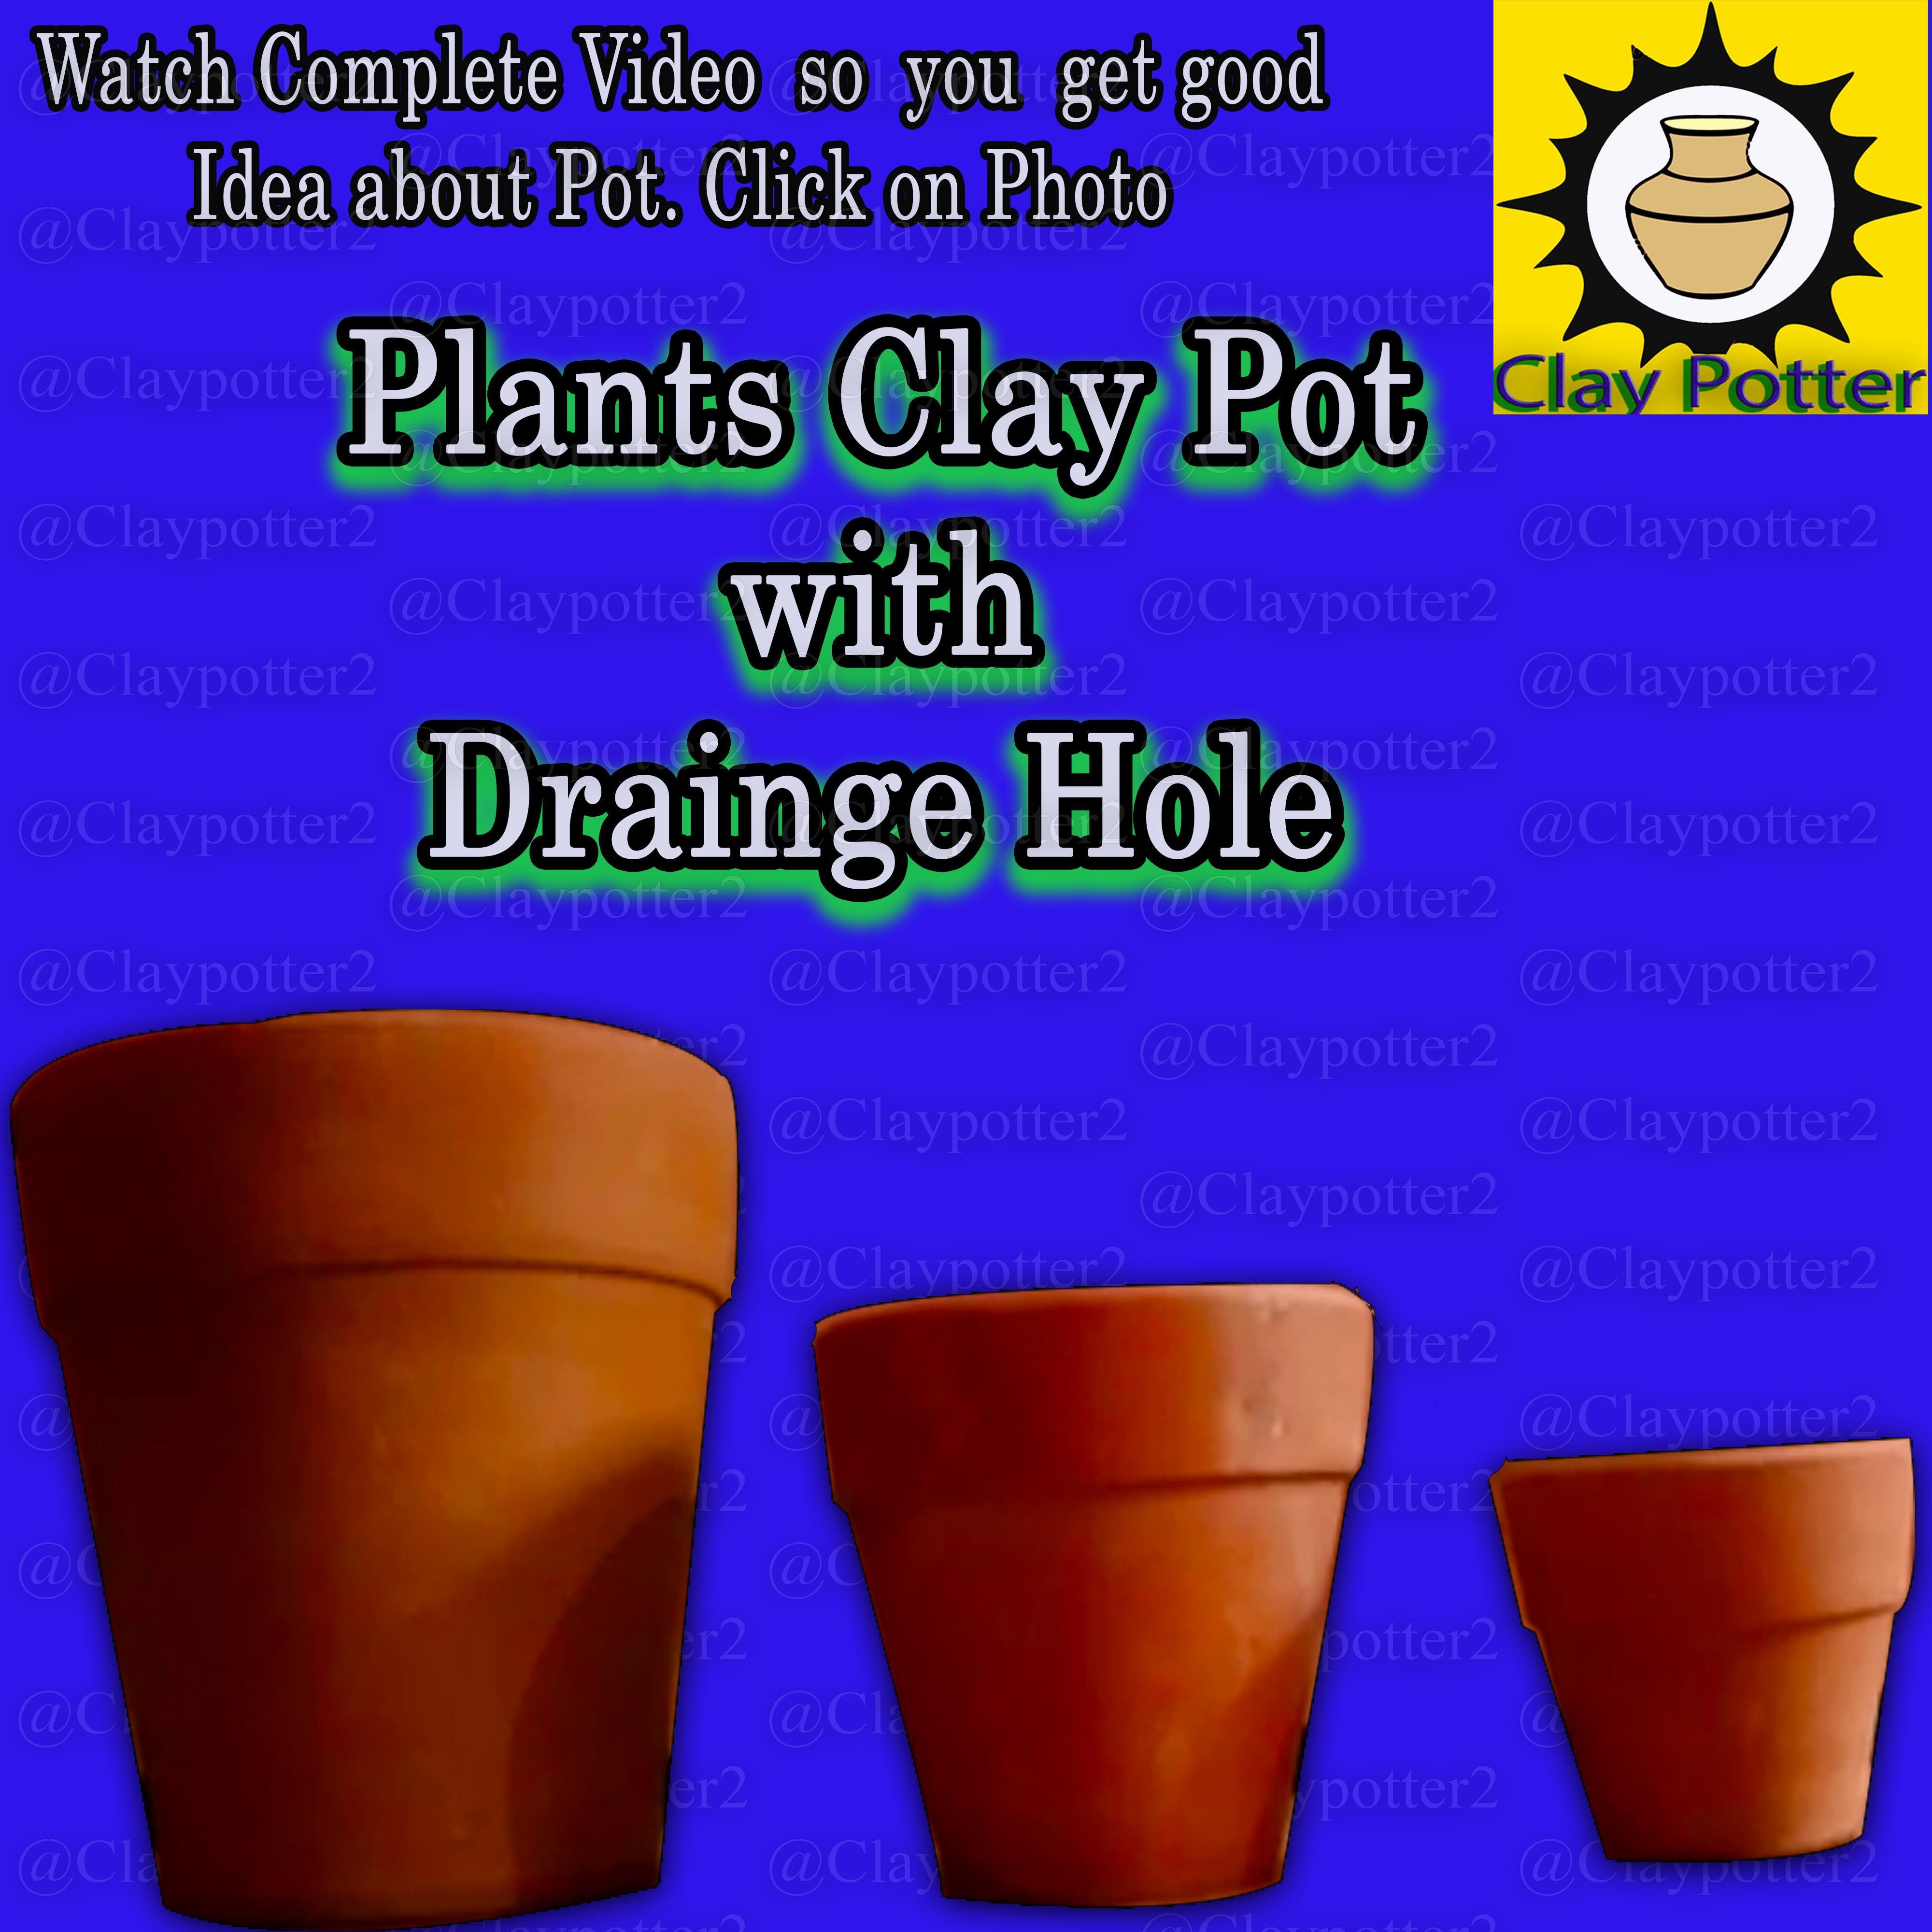 Clay Flower Planter Pots | Pack of 3 Piece Set | Watch Video Click on Photo get of idea about Pots| Clay Potter | Follow our Store